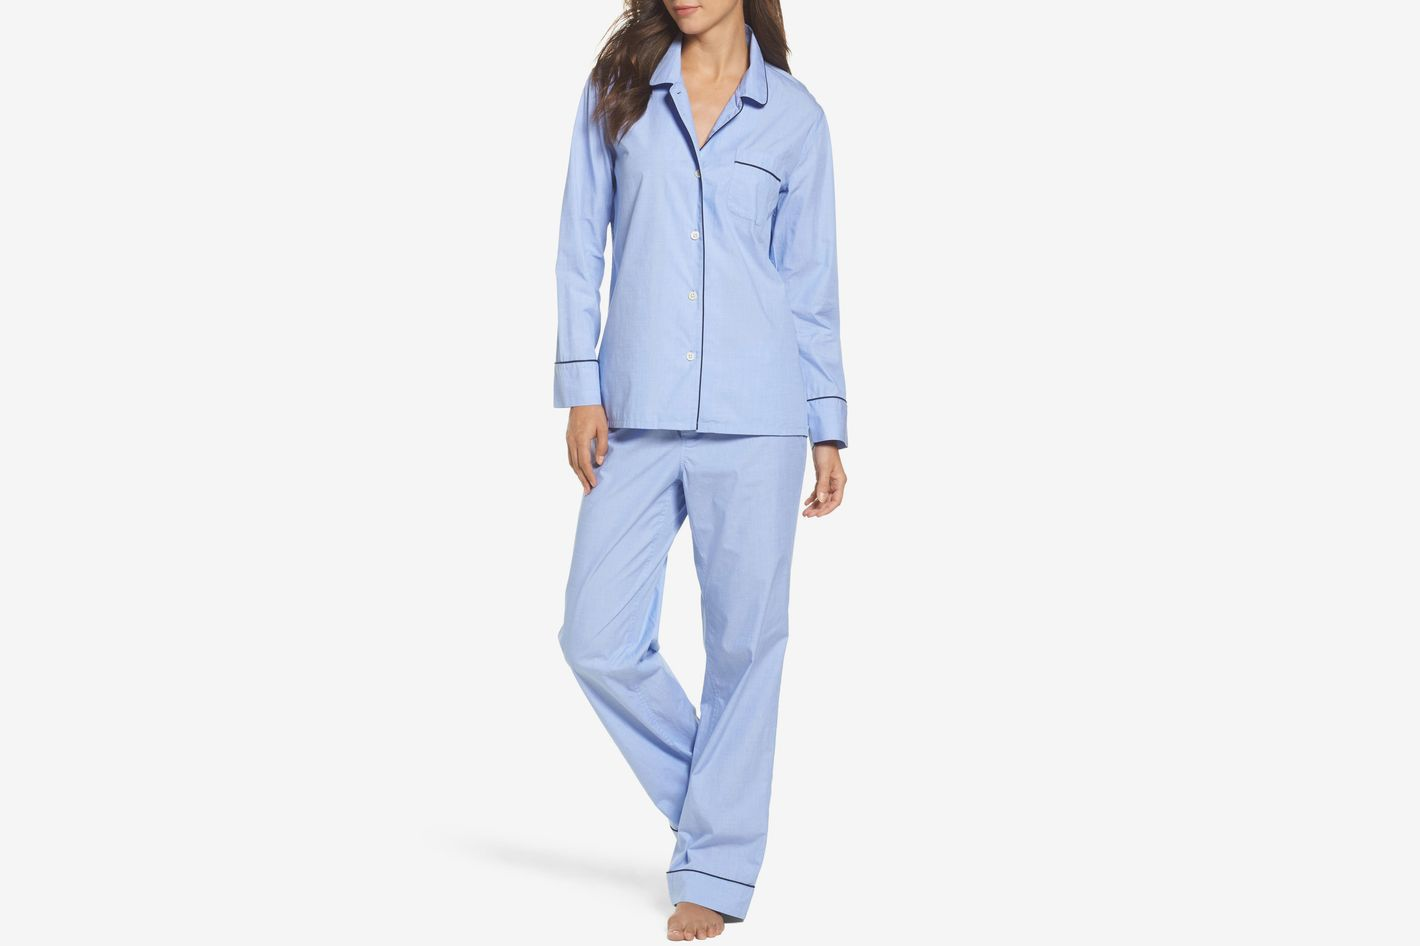 quite nice kid latest design 7 Best Pajamas for Menswear-Inspired Pajamas for Women 2018 ...